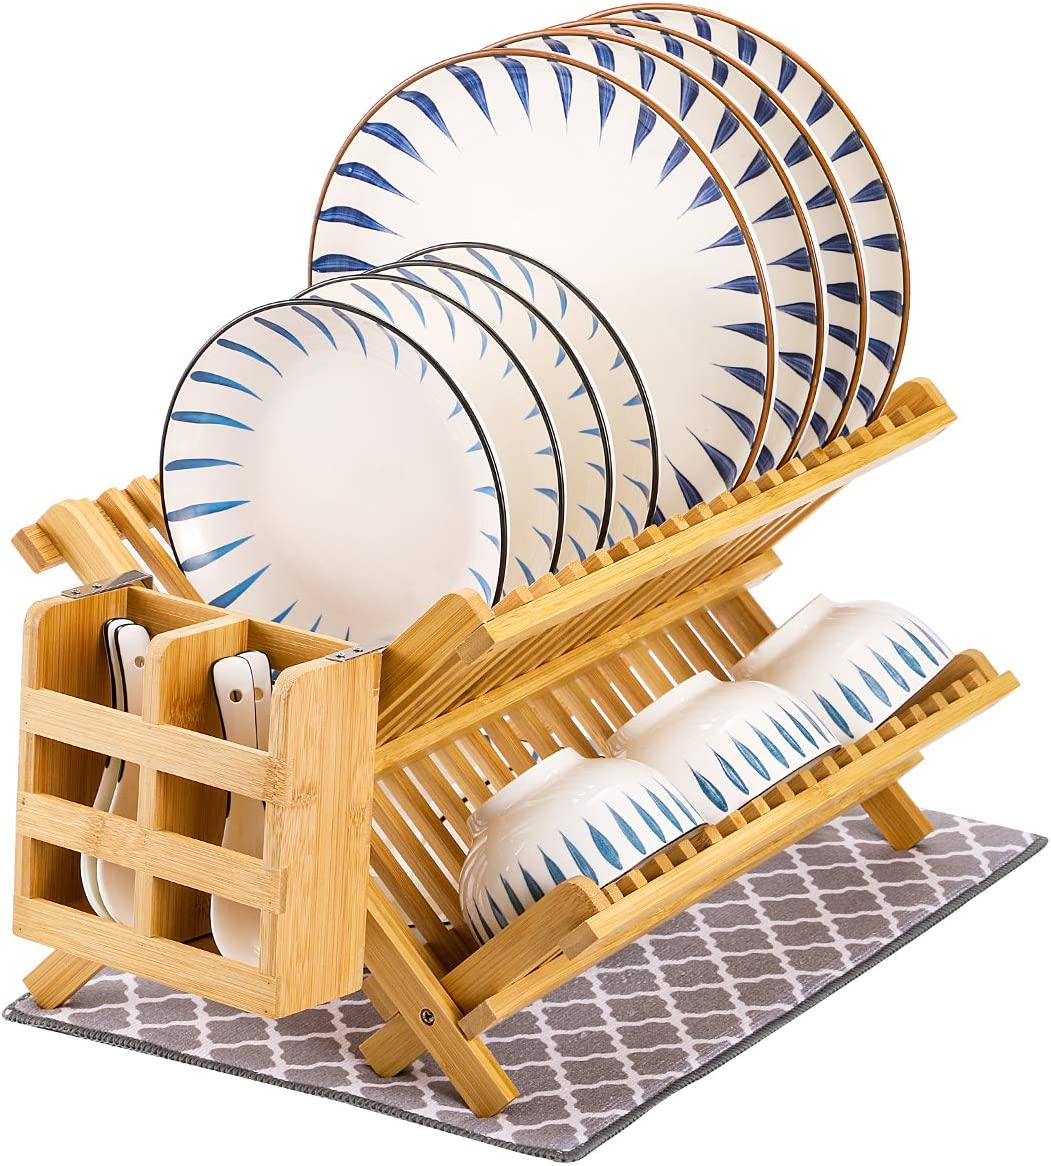 MJM Dish Rack Set Bamboo Kitchen Seattle Mall Drying R Financial sales sale Drainer